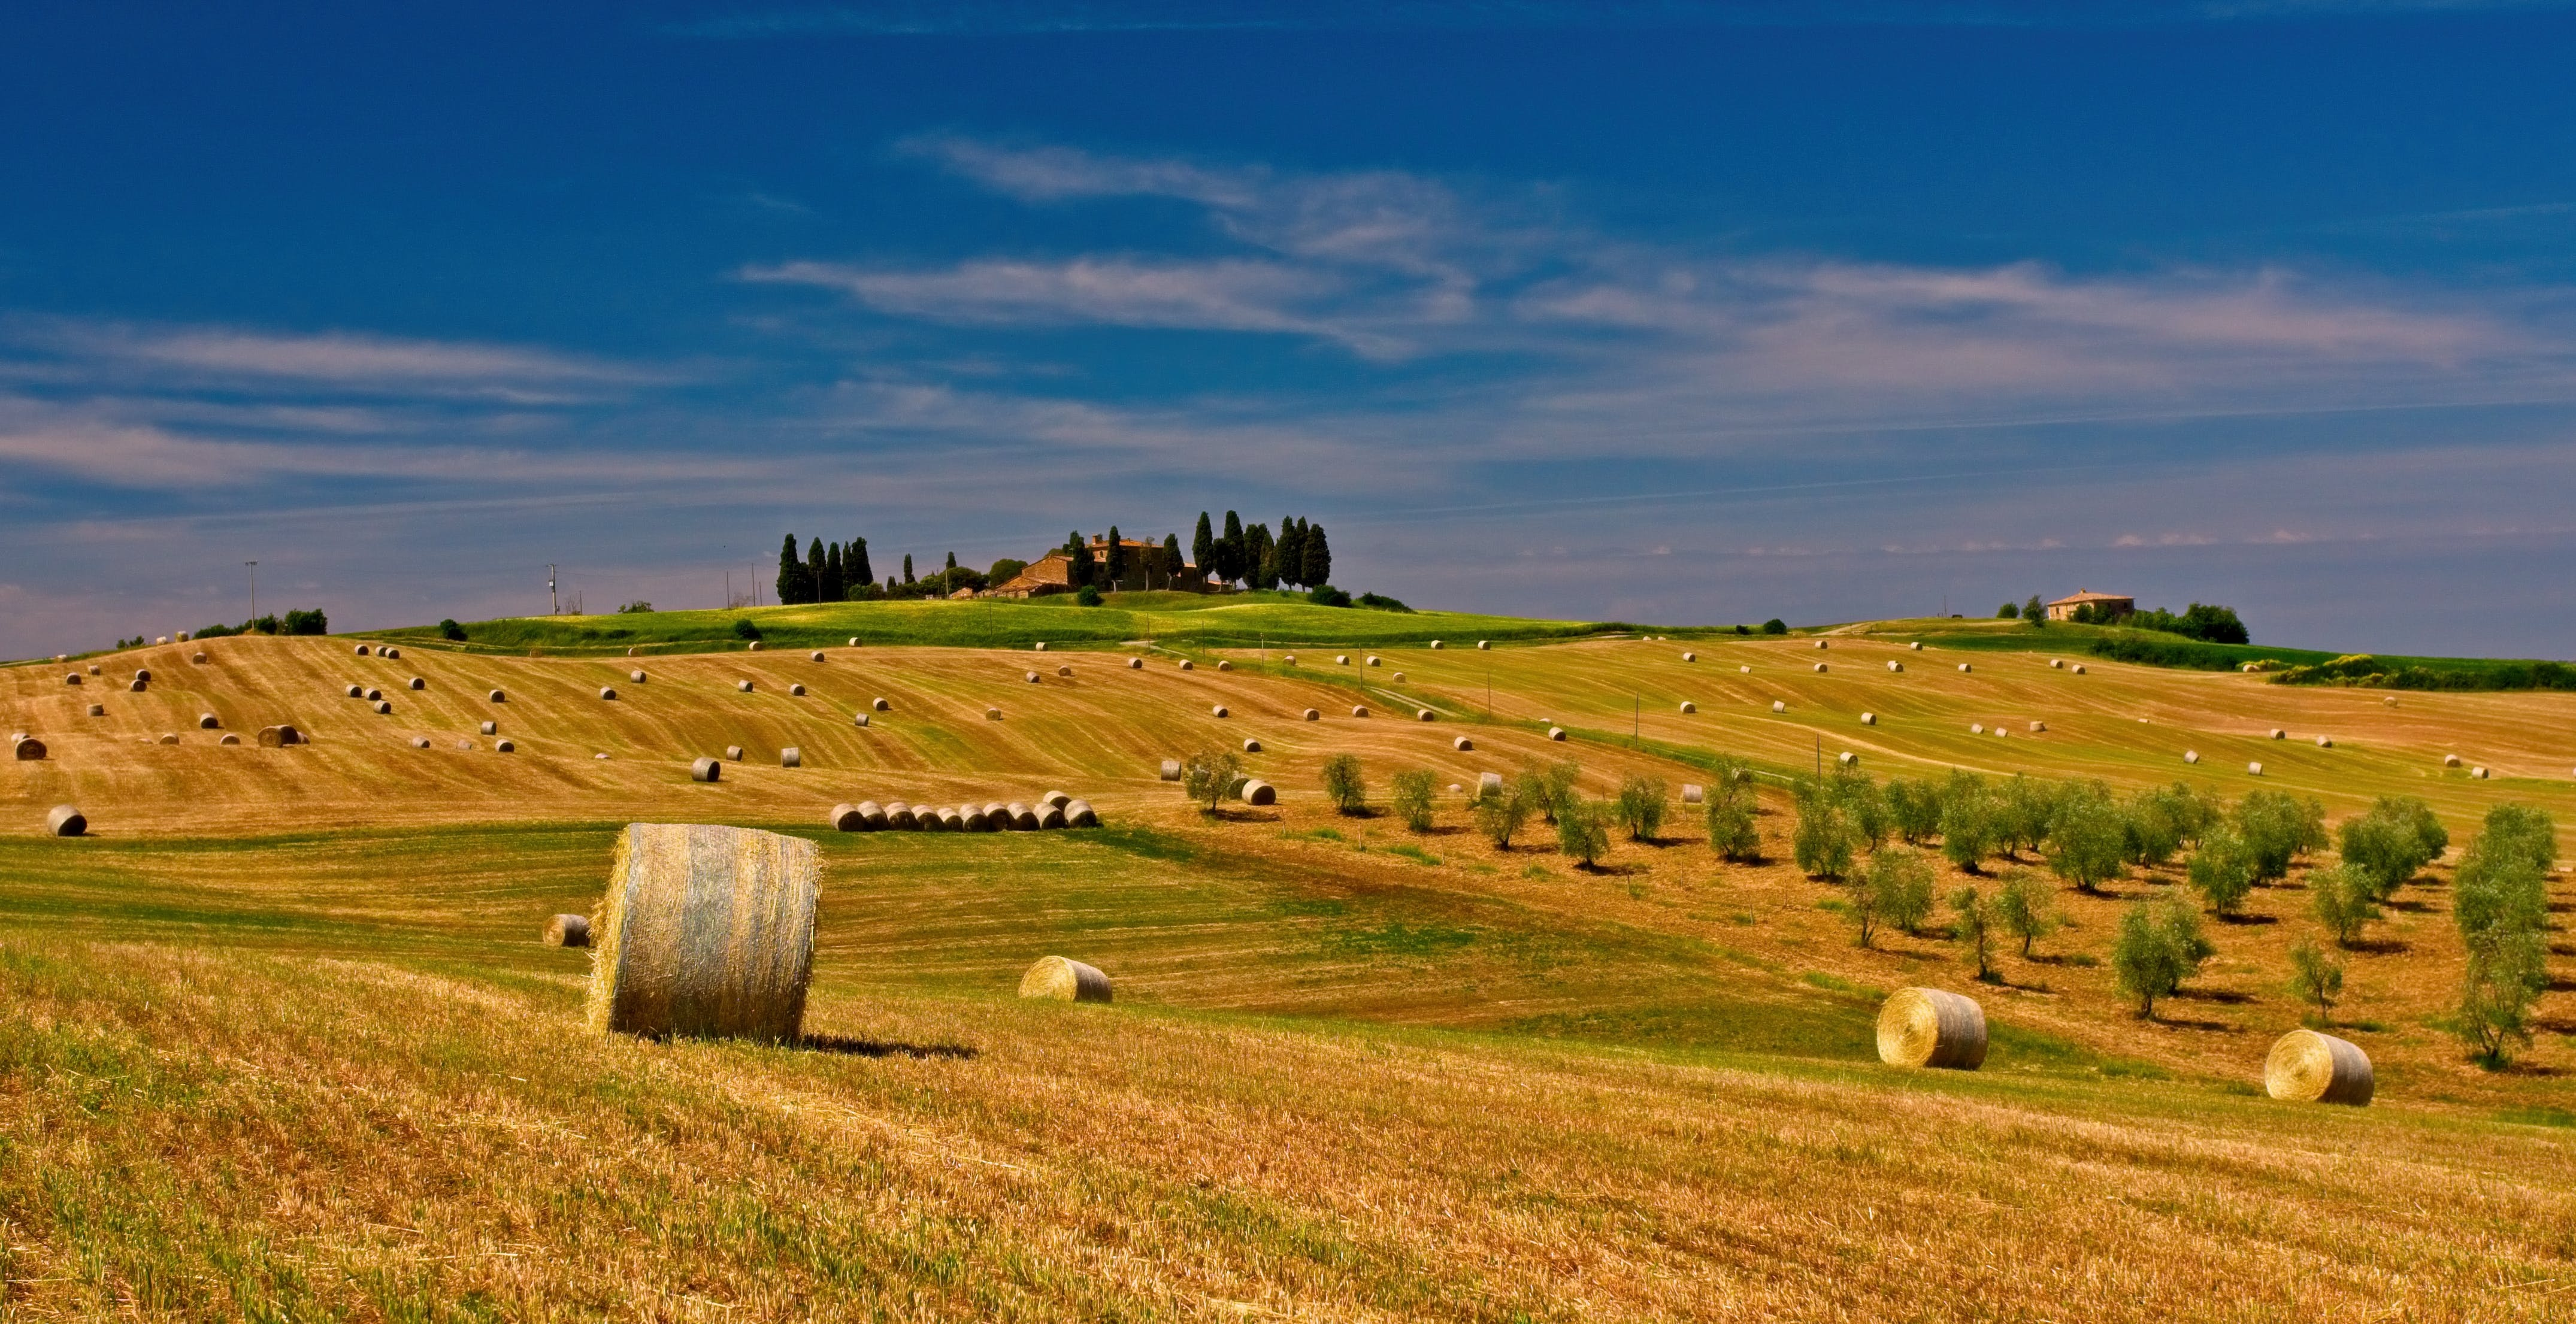 agriculture, bale, countryside